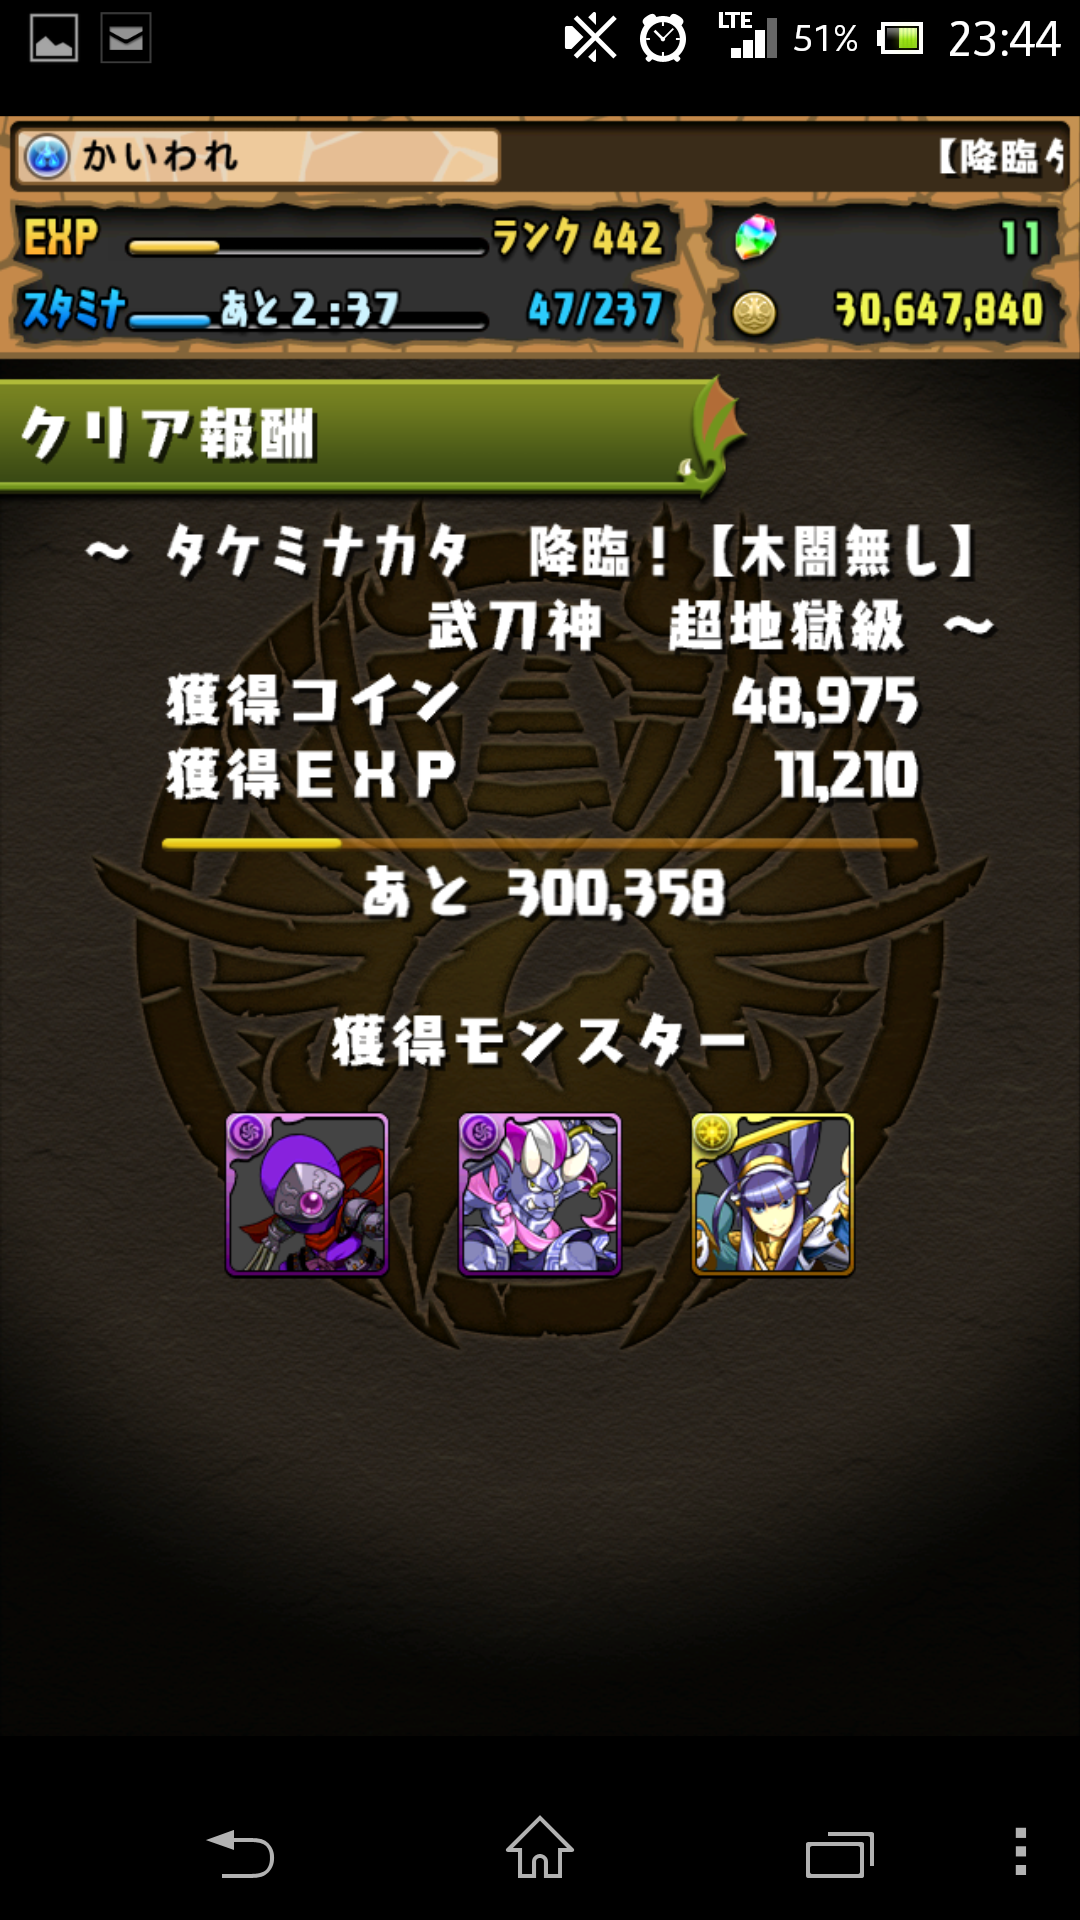 20140517033408063.png